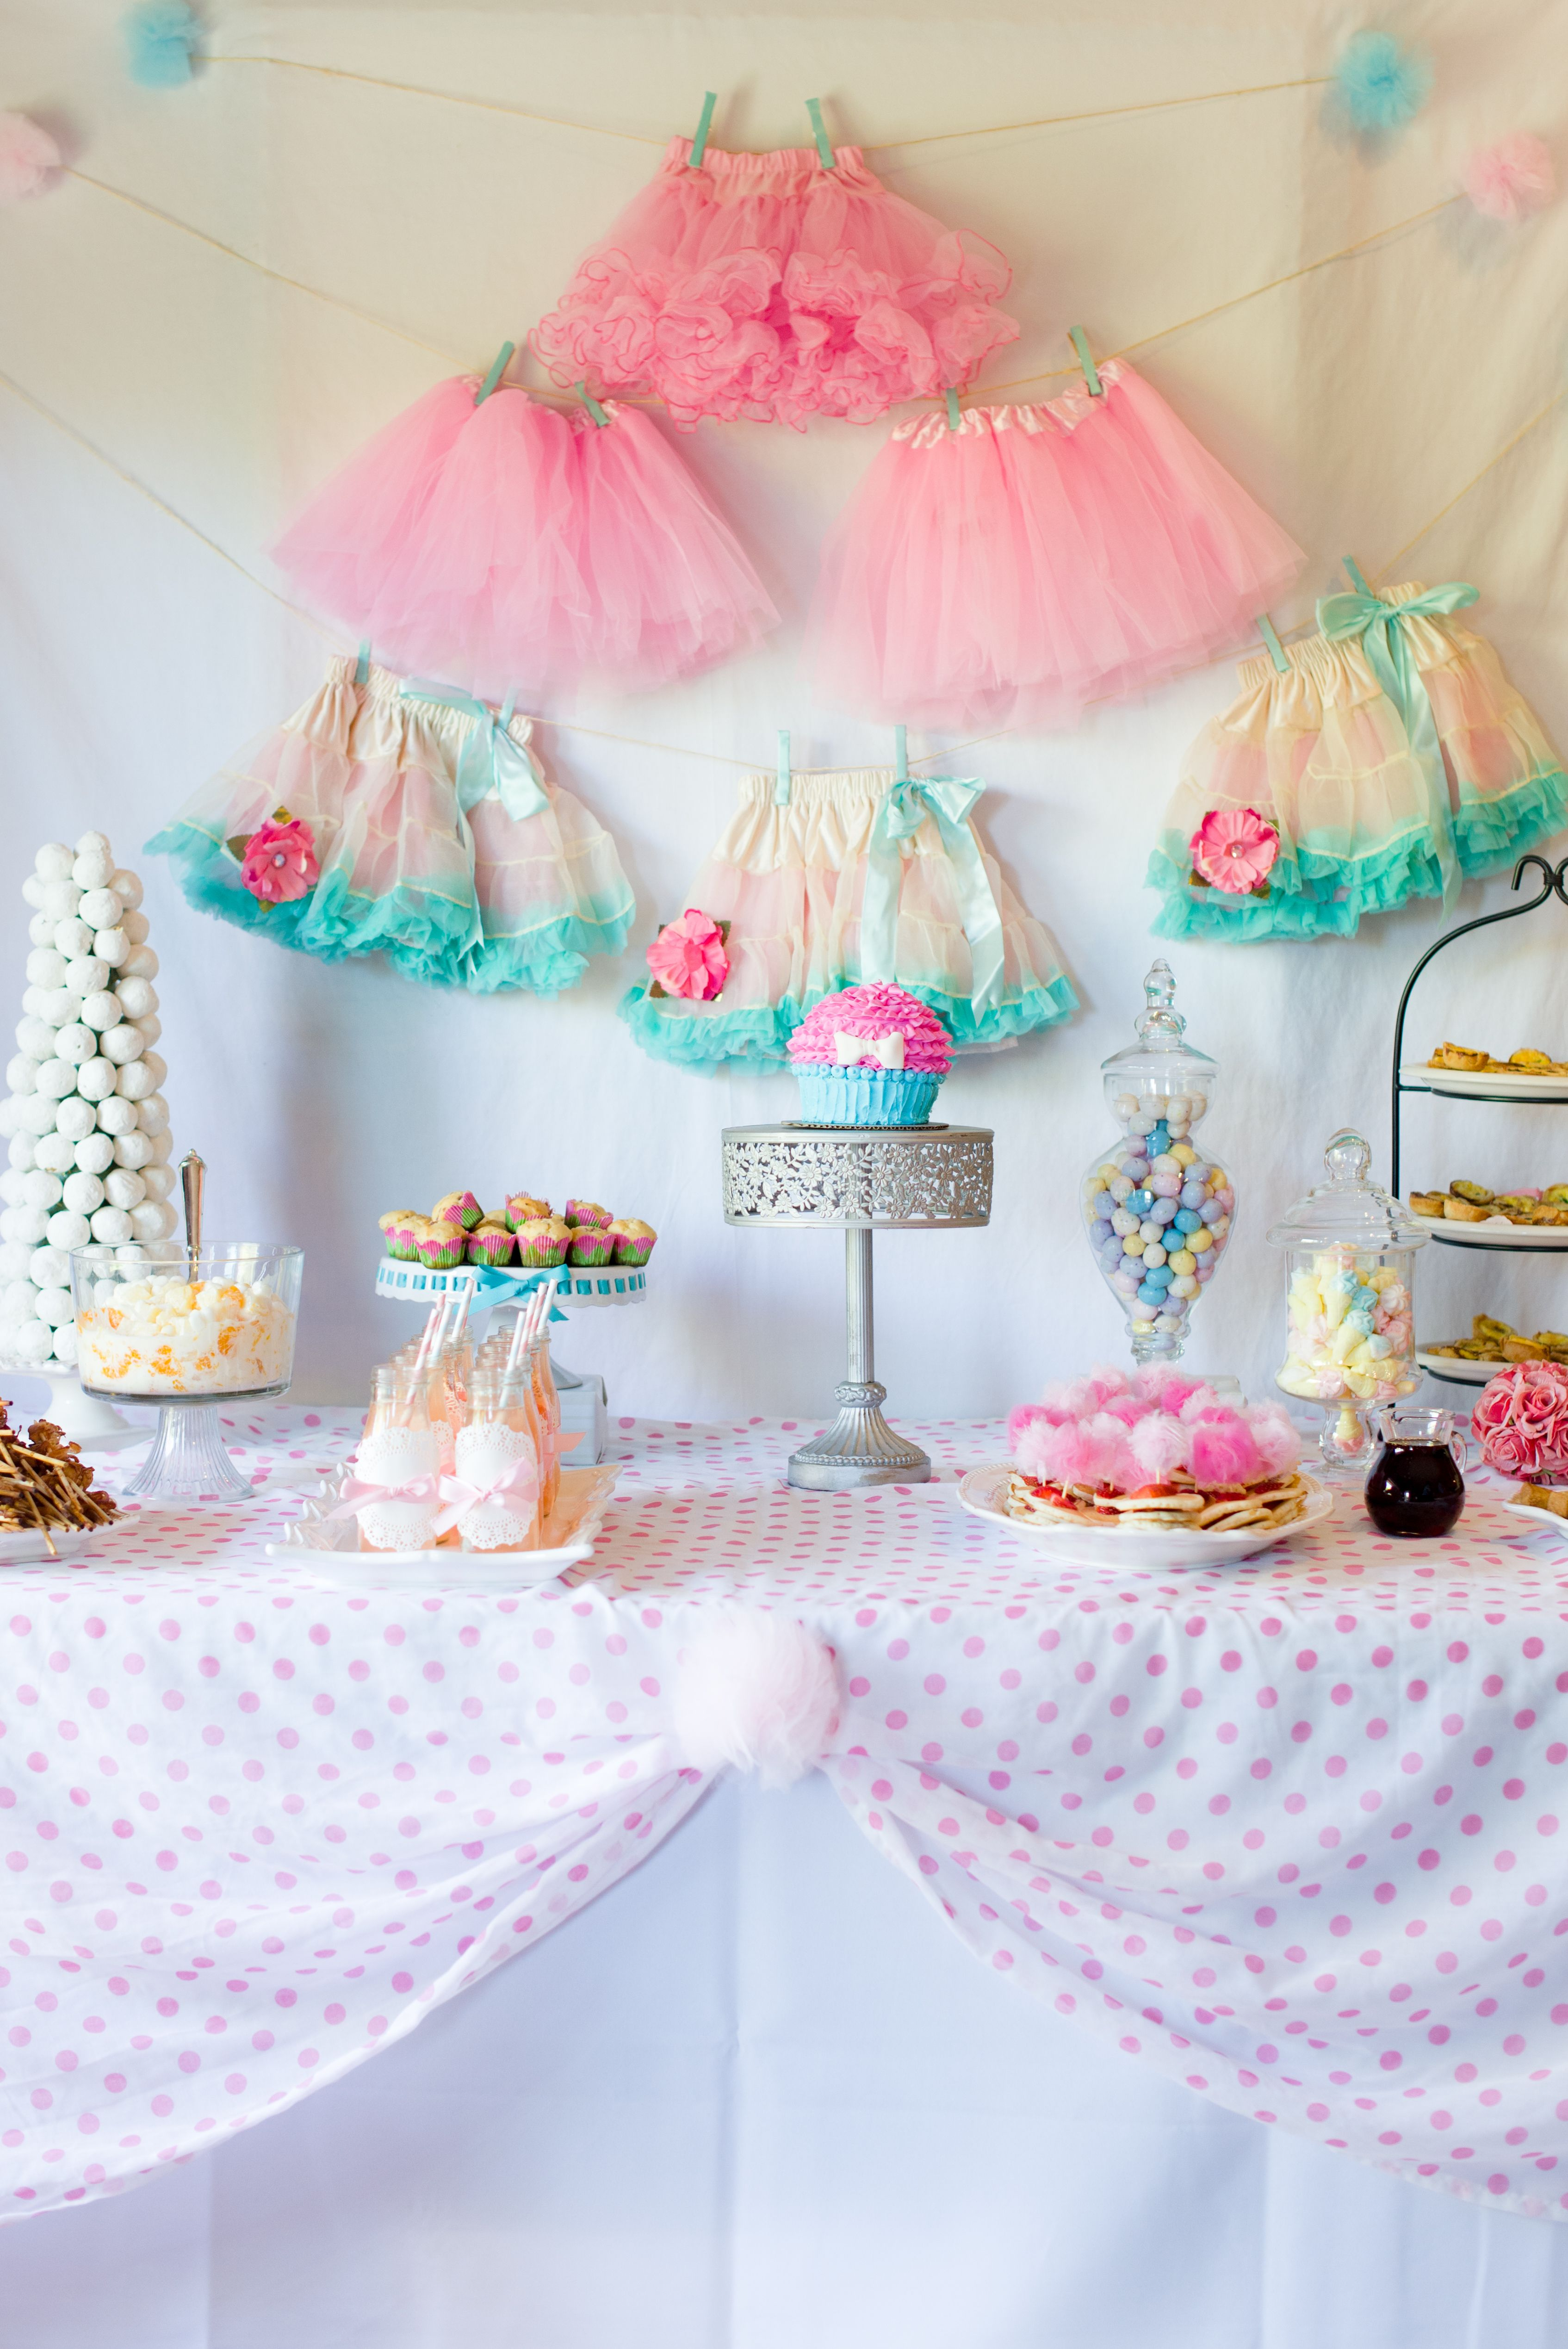 Ad s Tutu and Bow Tie Party ONE Pinterest